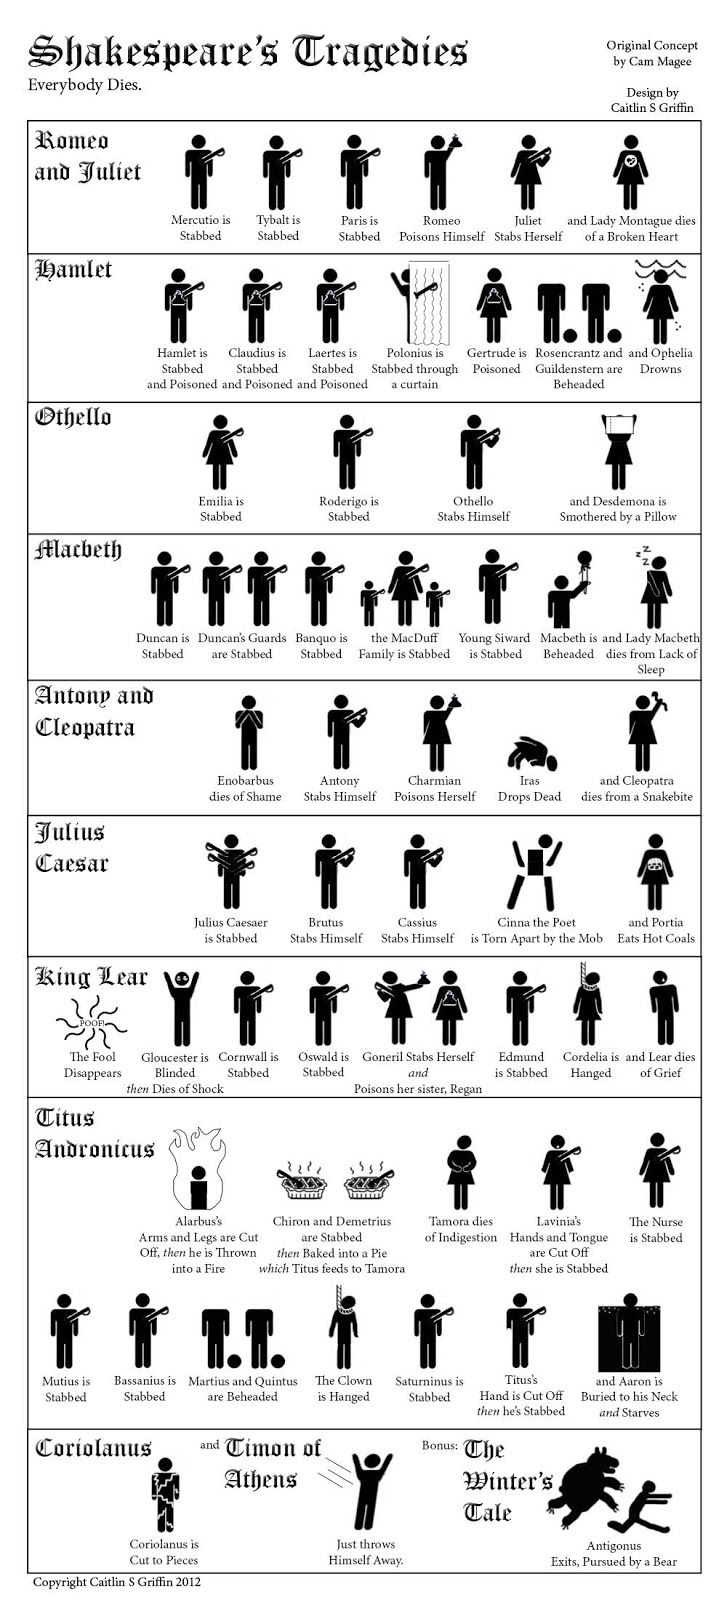 Shakespeare's Tragedies - Everybody Dies by drownmybooks. Design by Caitlin S. Griffin. Original Concept by Cam Magee: Great! #Infographic #Shakespeare #Tragedies